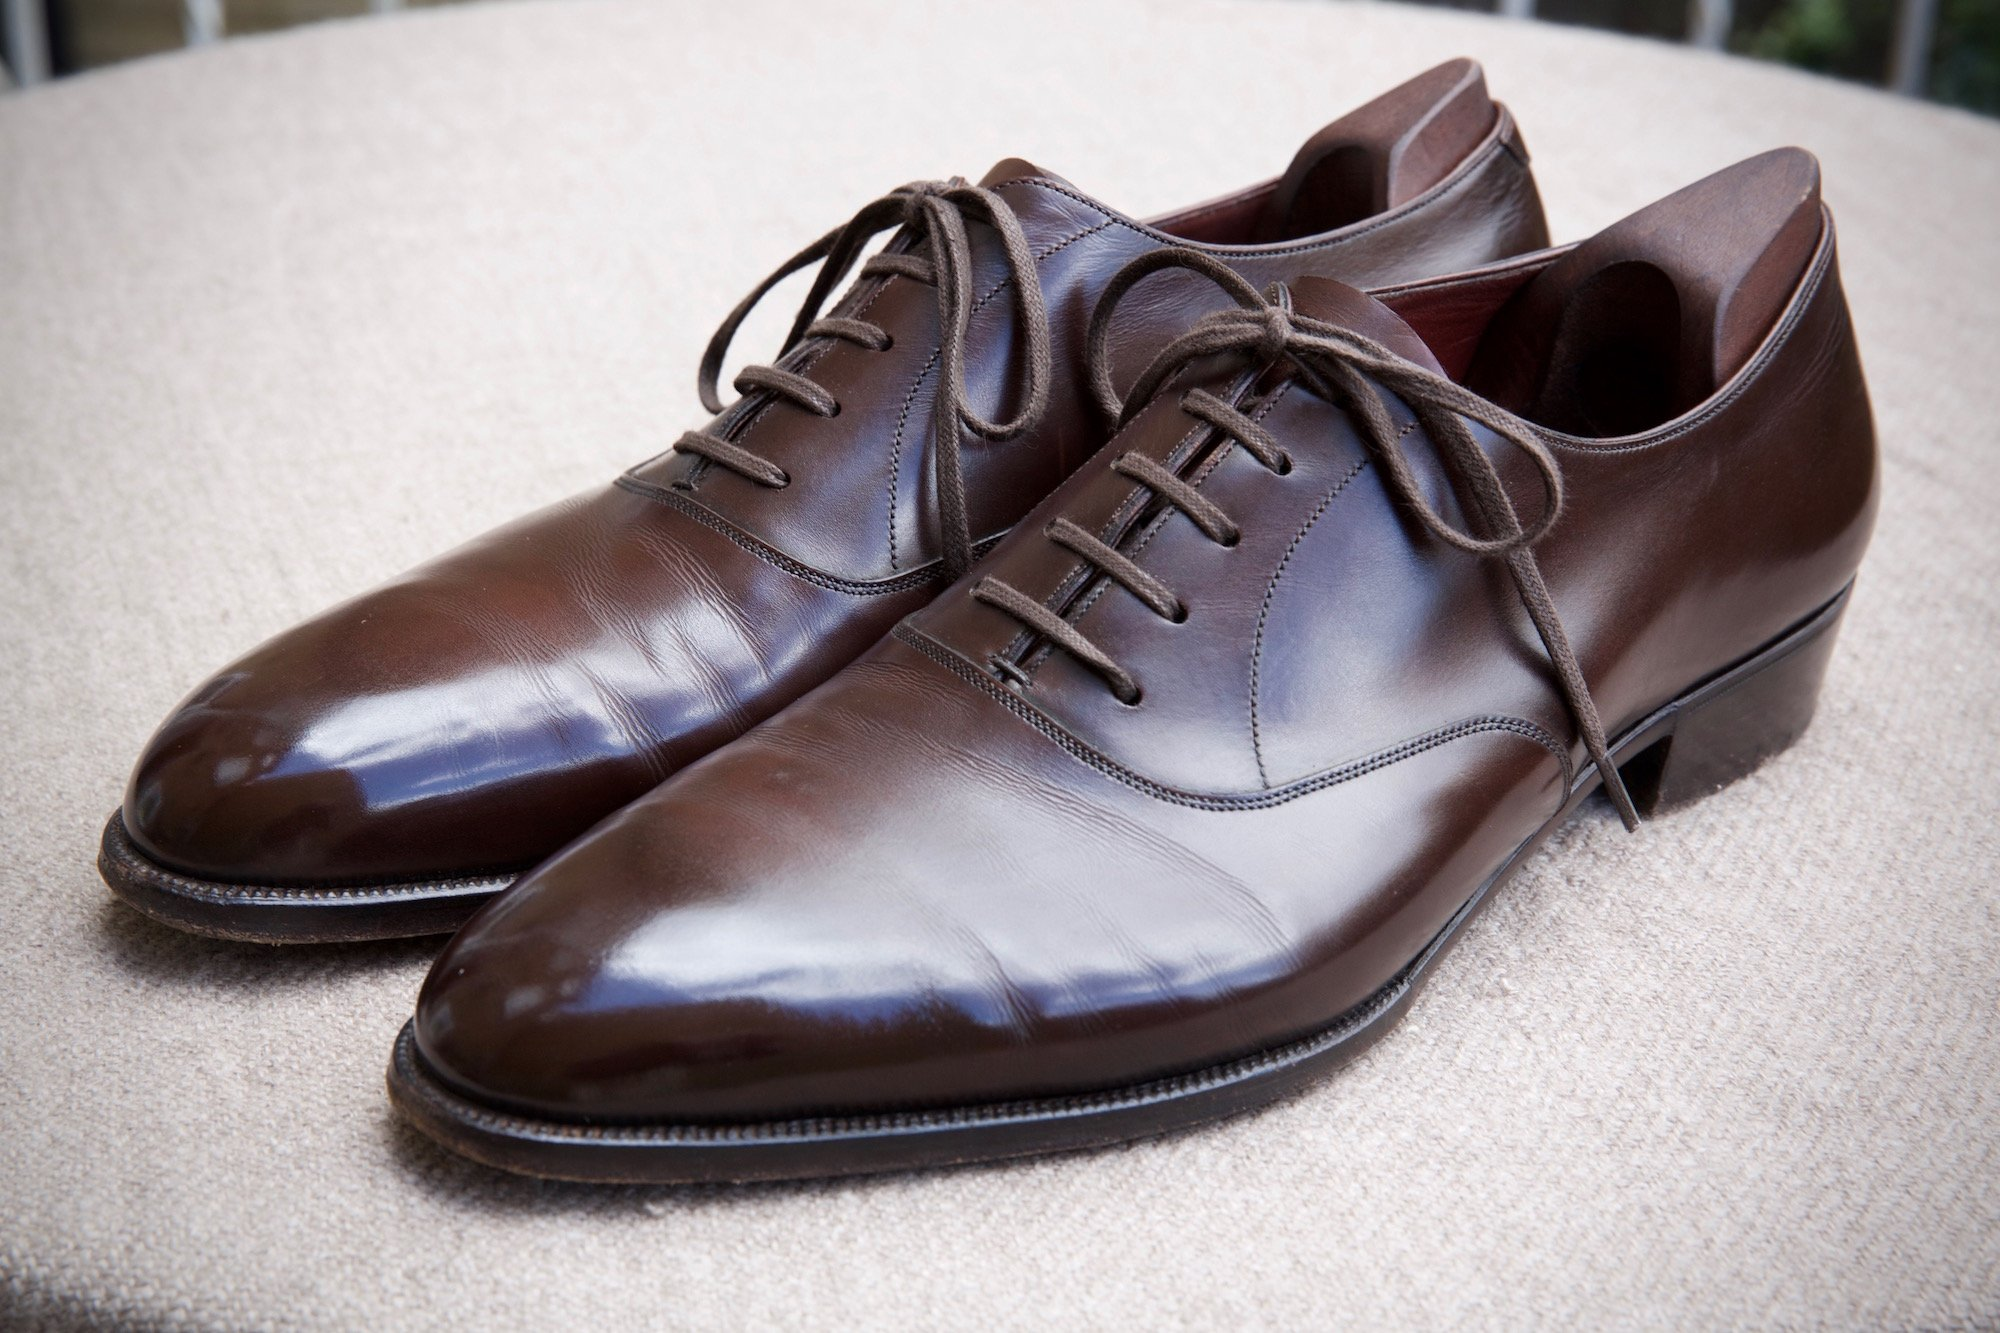 Foster & Son bespoke shoe london